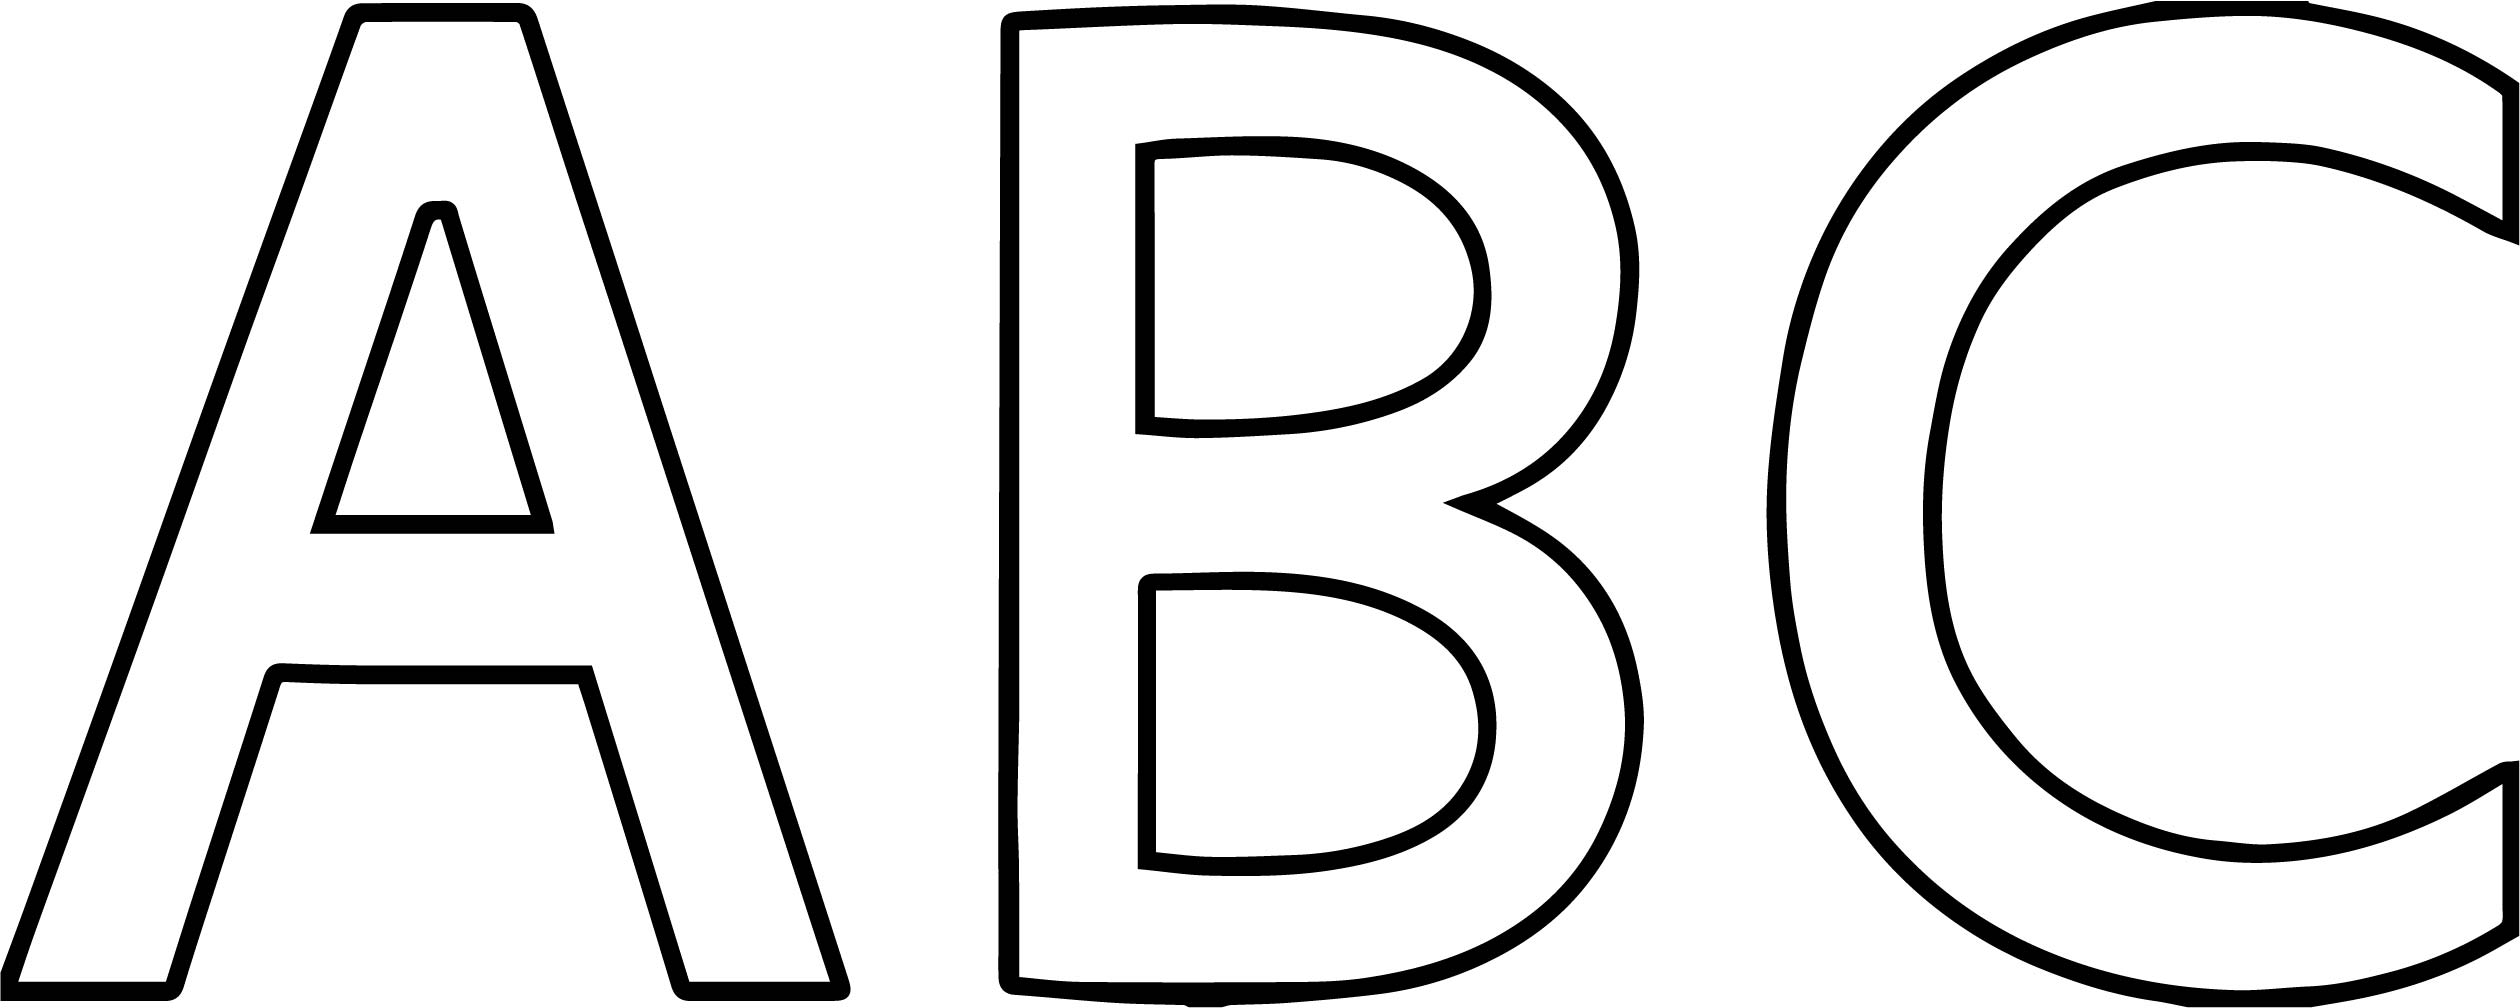 Alphabet Big Abc Coloring Page